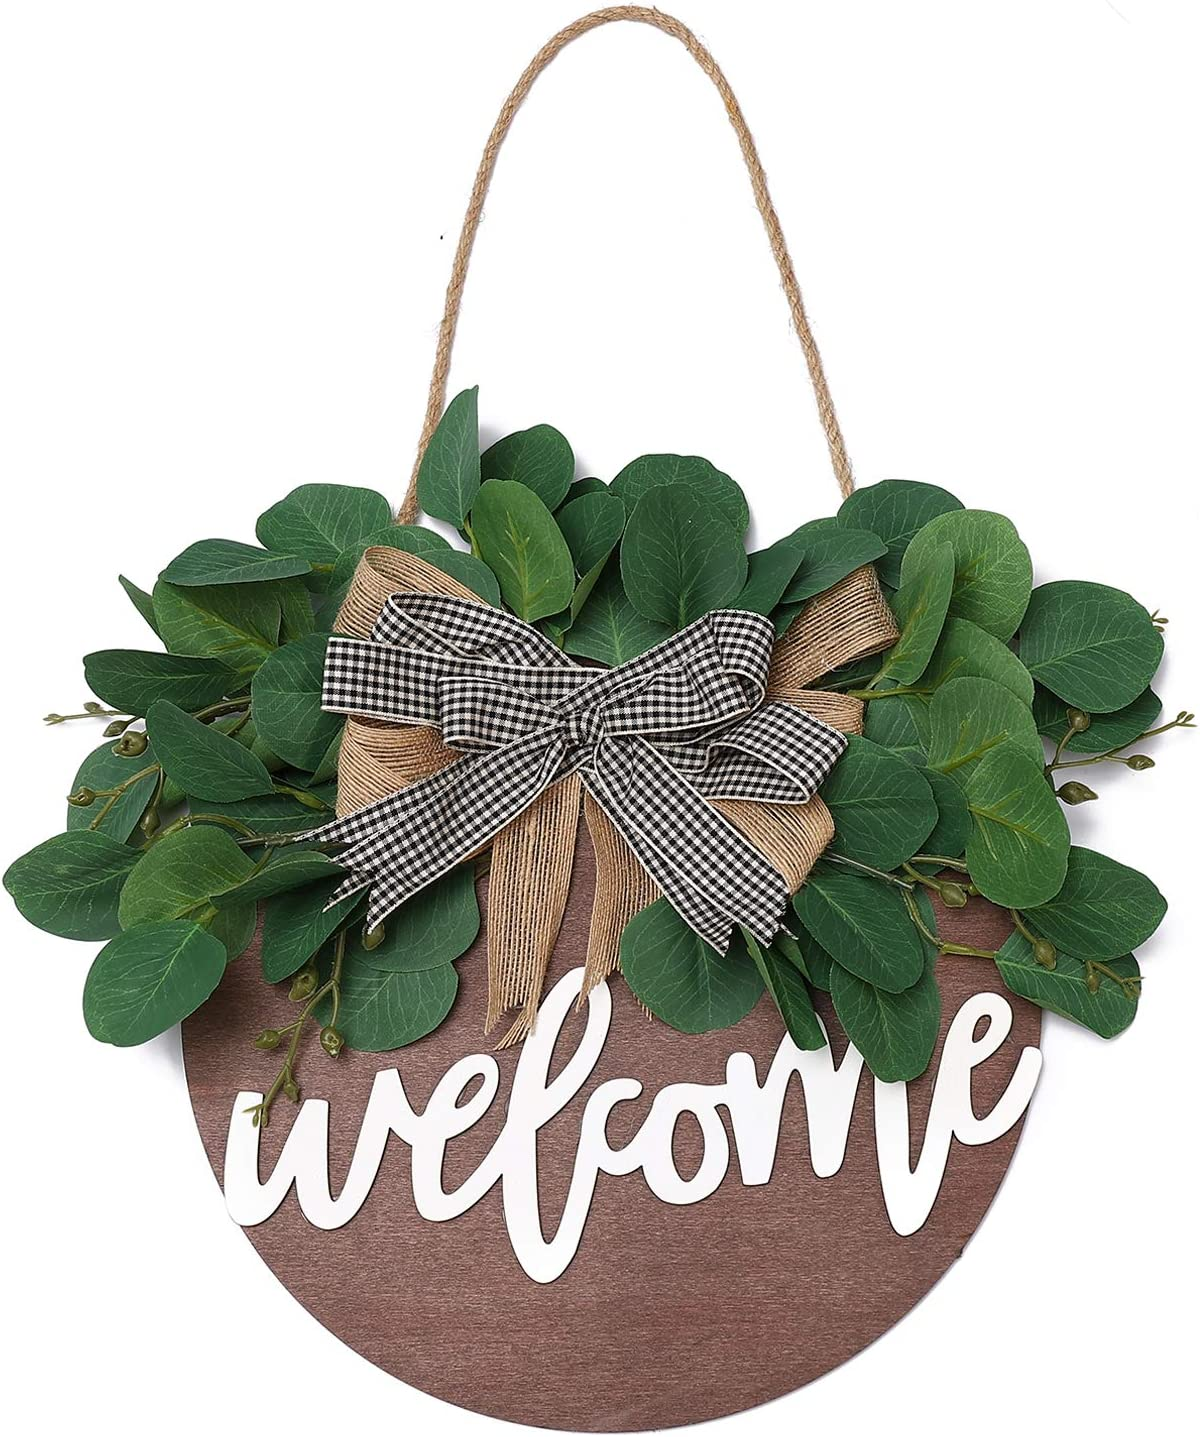 QUNWREATH Welcome Sign , Rustic Front Door Decor, Round Wood Hanging Sign with Eucalyptus, Farmhouse Porch Home Decoration ,Thanksgiving Christmas Gift(12inch) (Welcome Brown board)